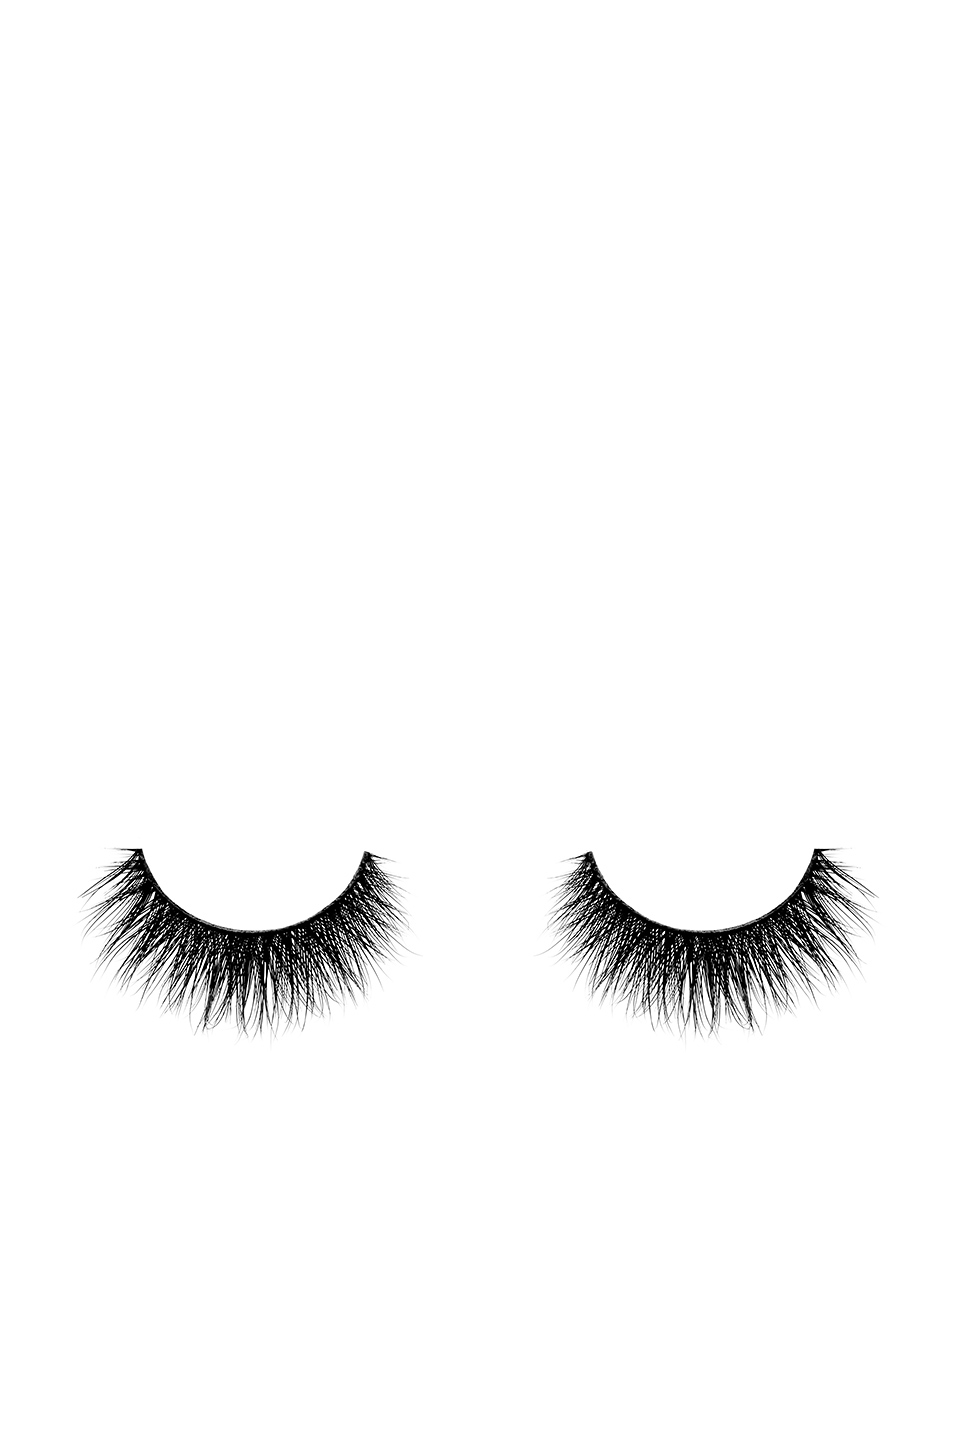 Velour Lashes Skin To Skin Mink Lashes in